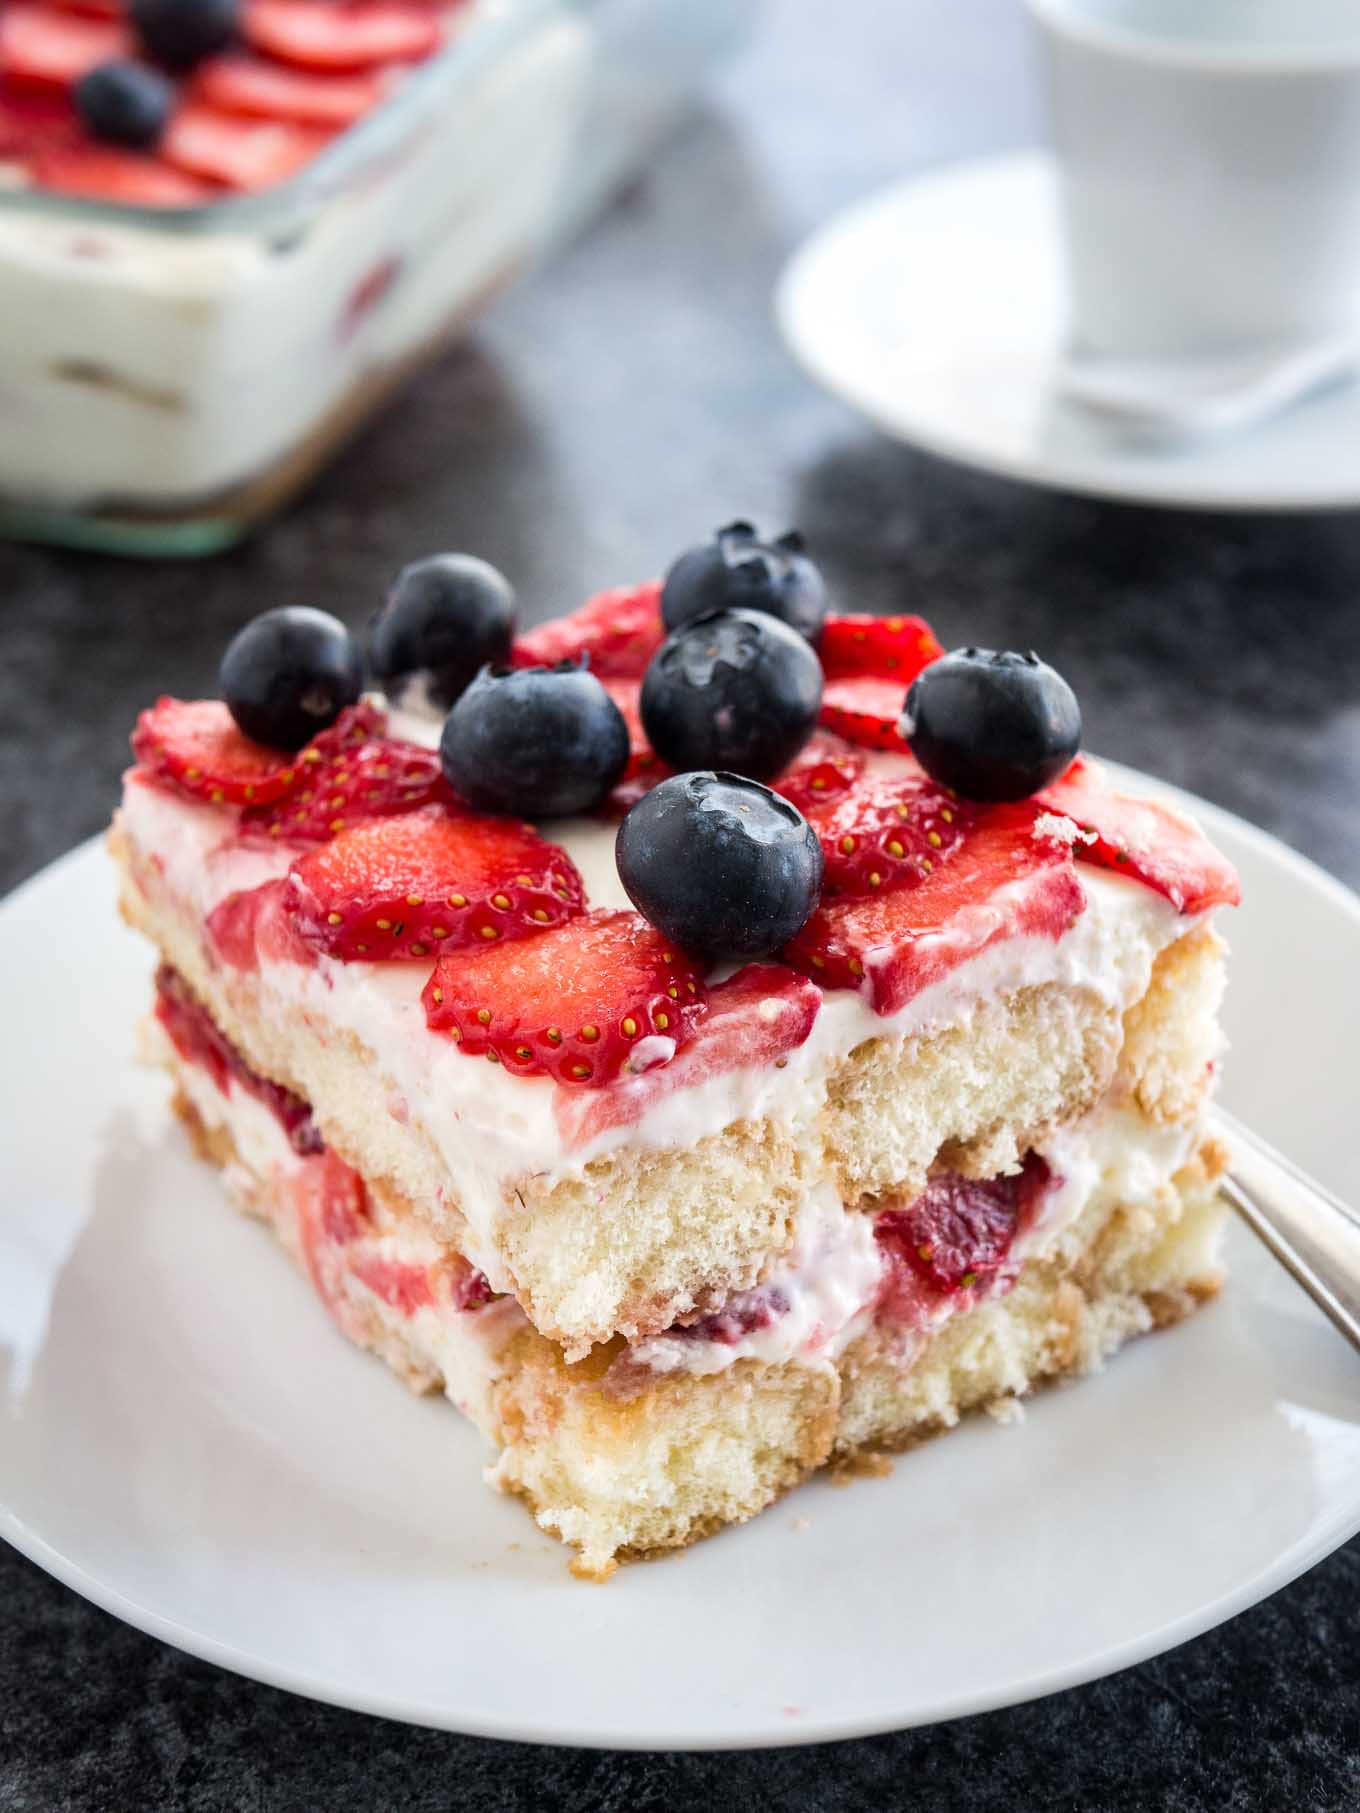 Strawberry Tiramisu is the perfect no-bake summer dessert made with fresh strawberries, ladyfingers, and mascarpone!